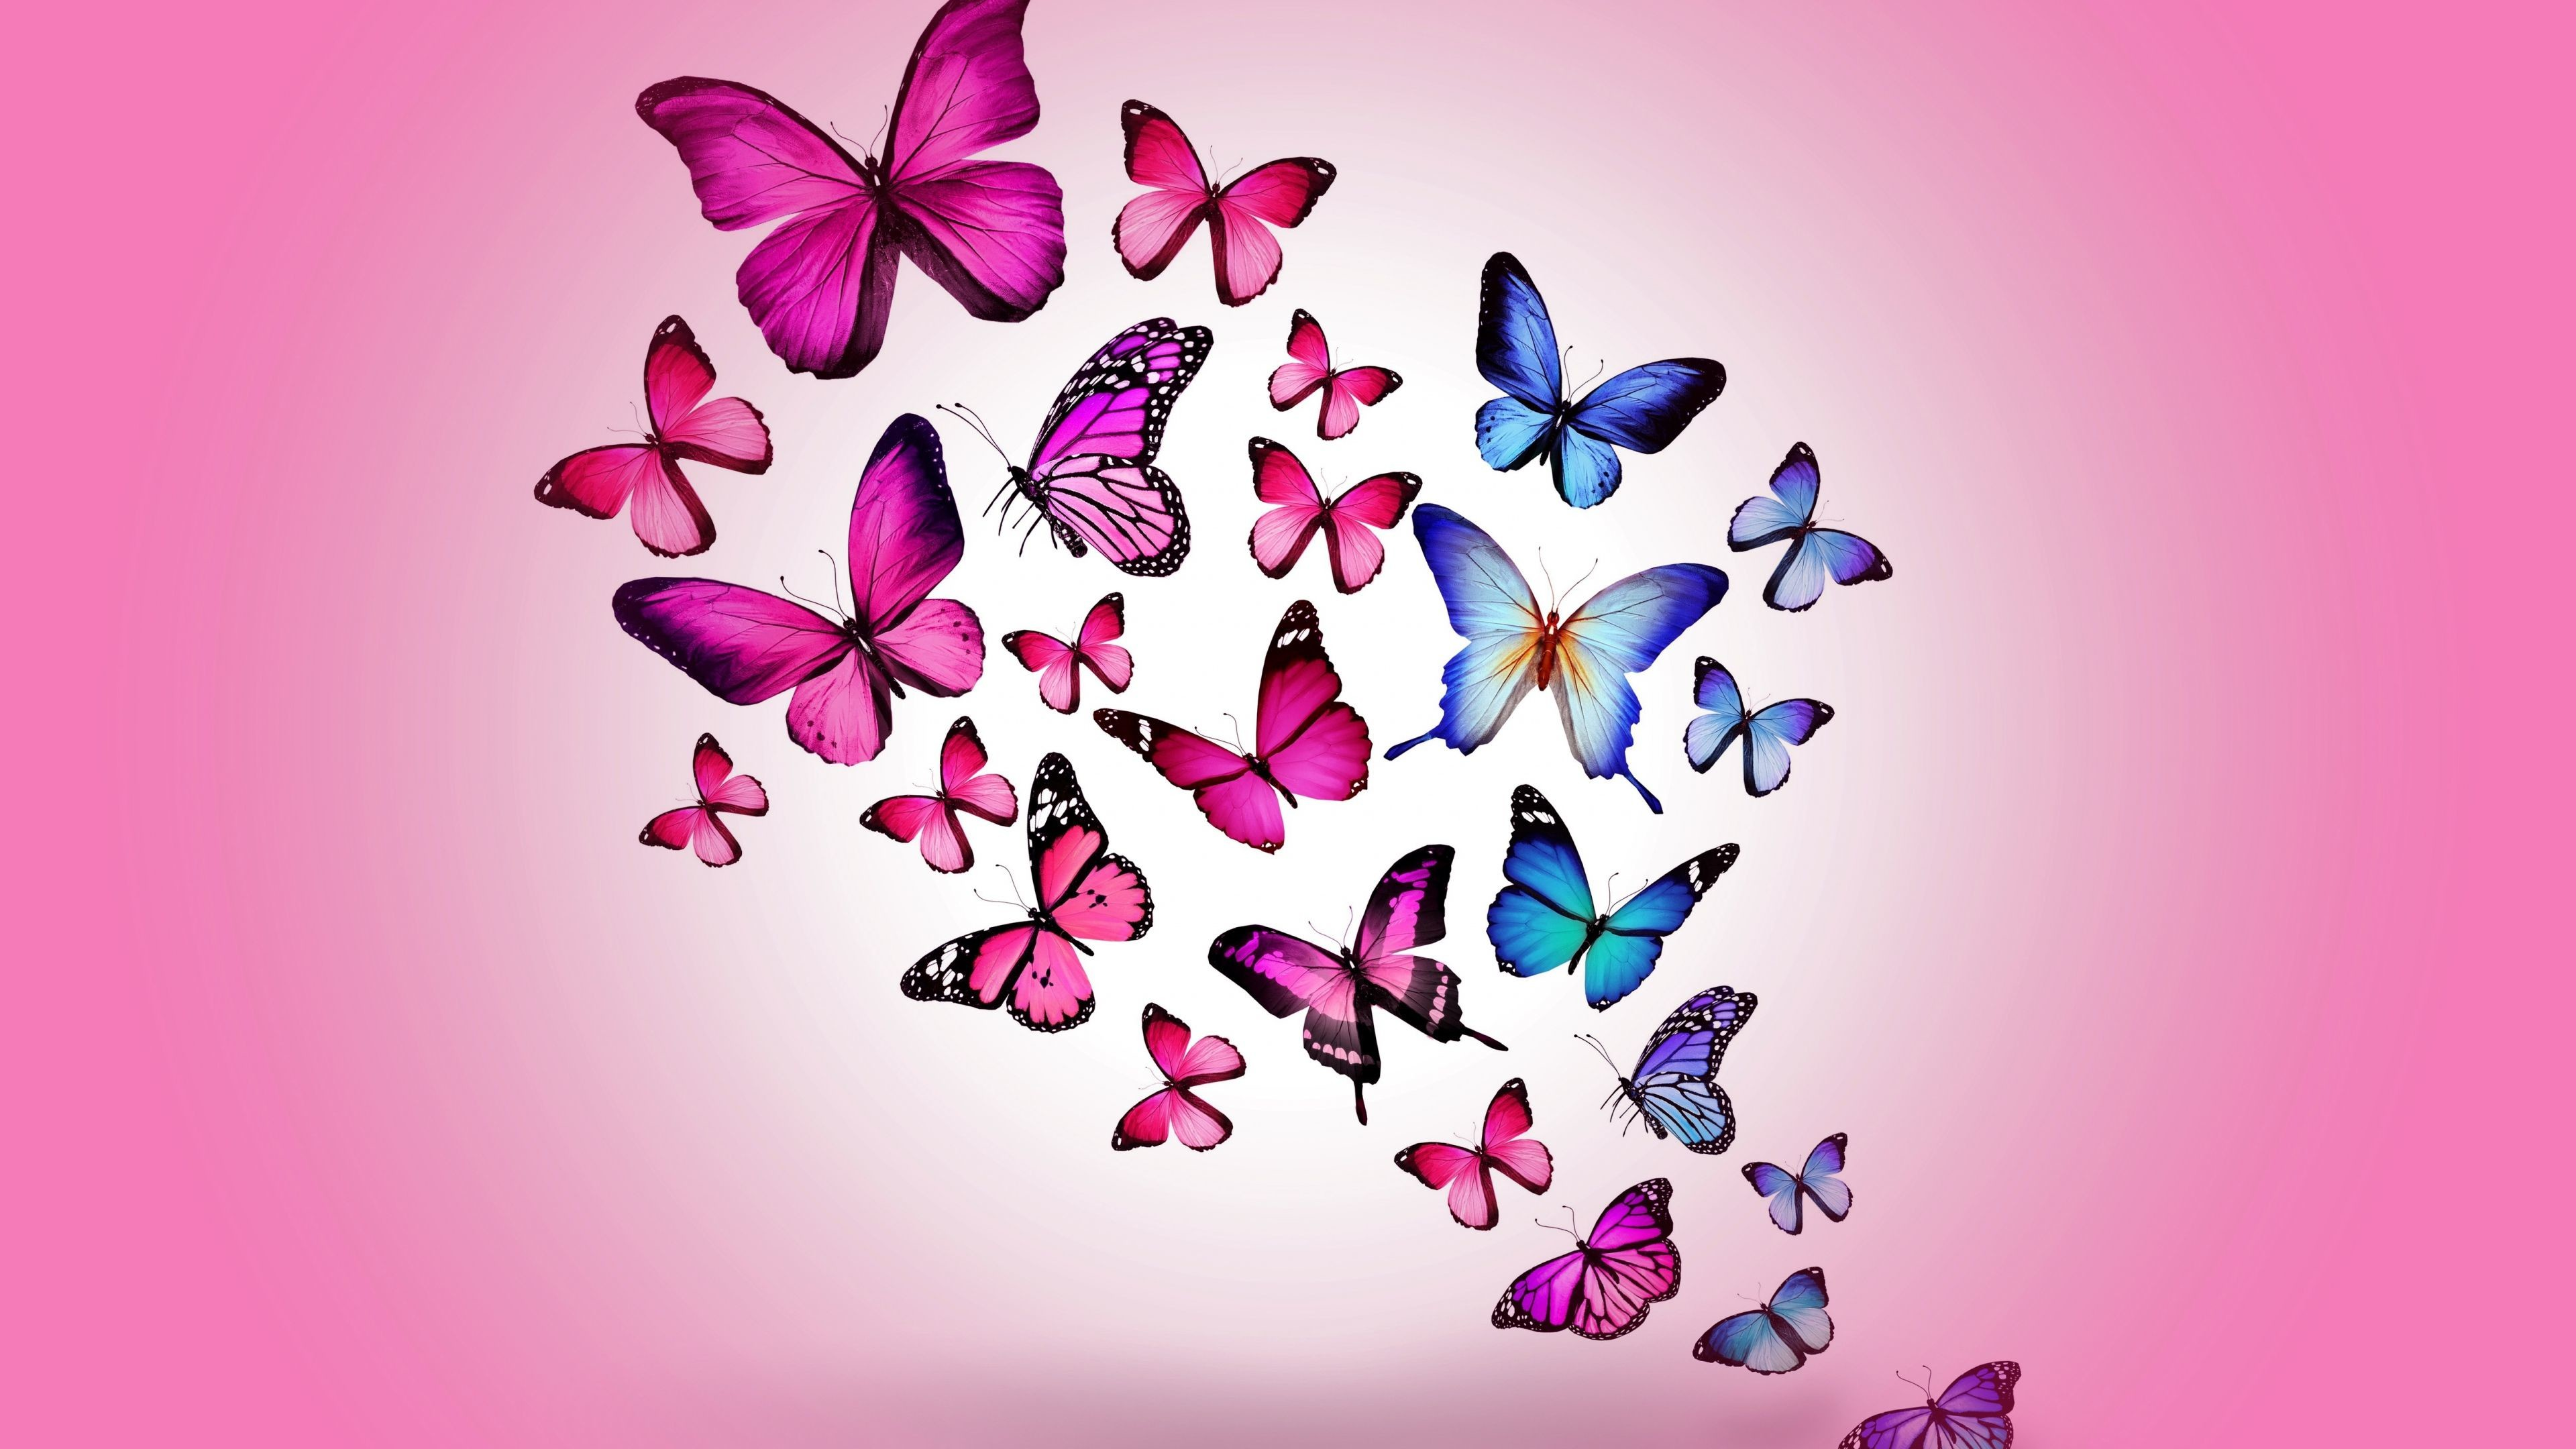 Pink Butterfly Wallpaper Desktop 84 Images